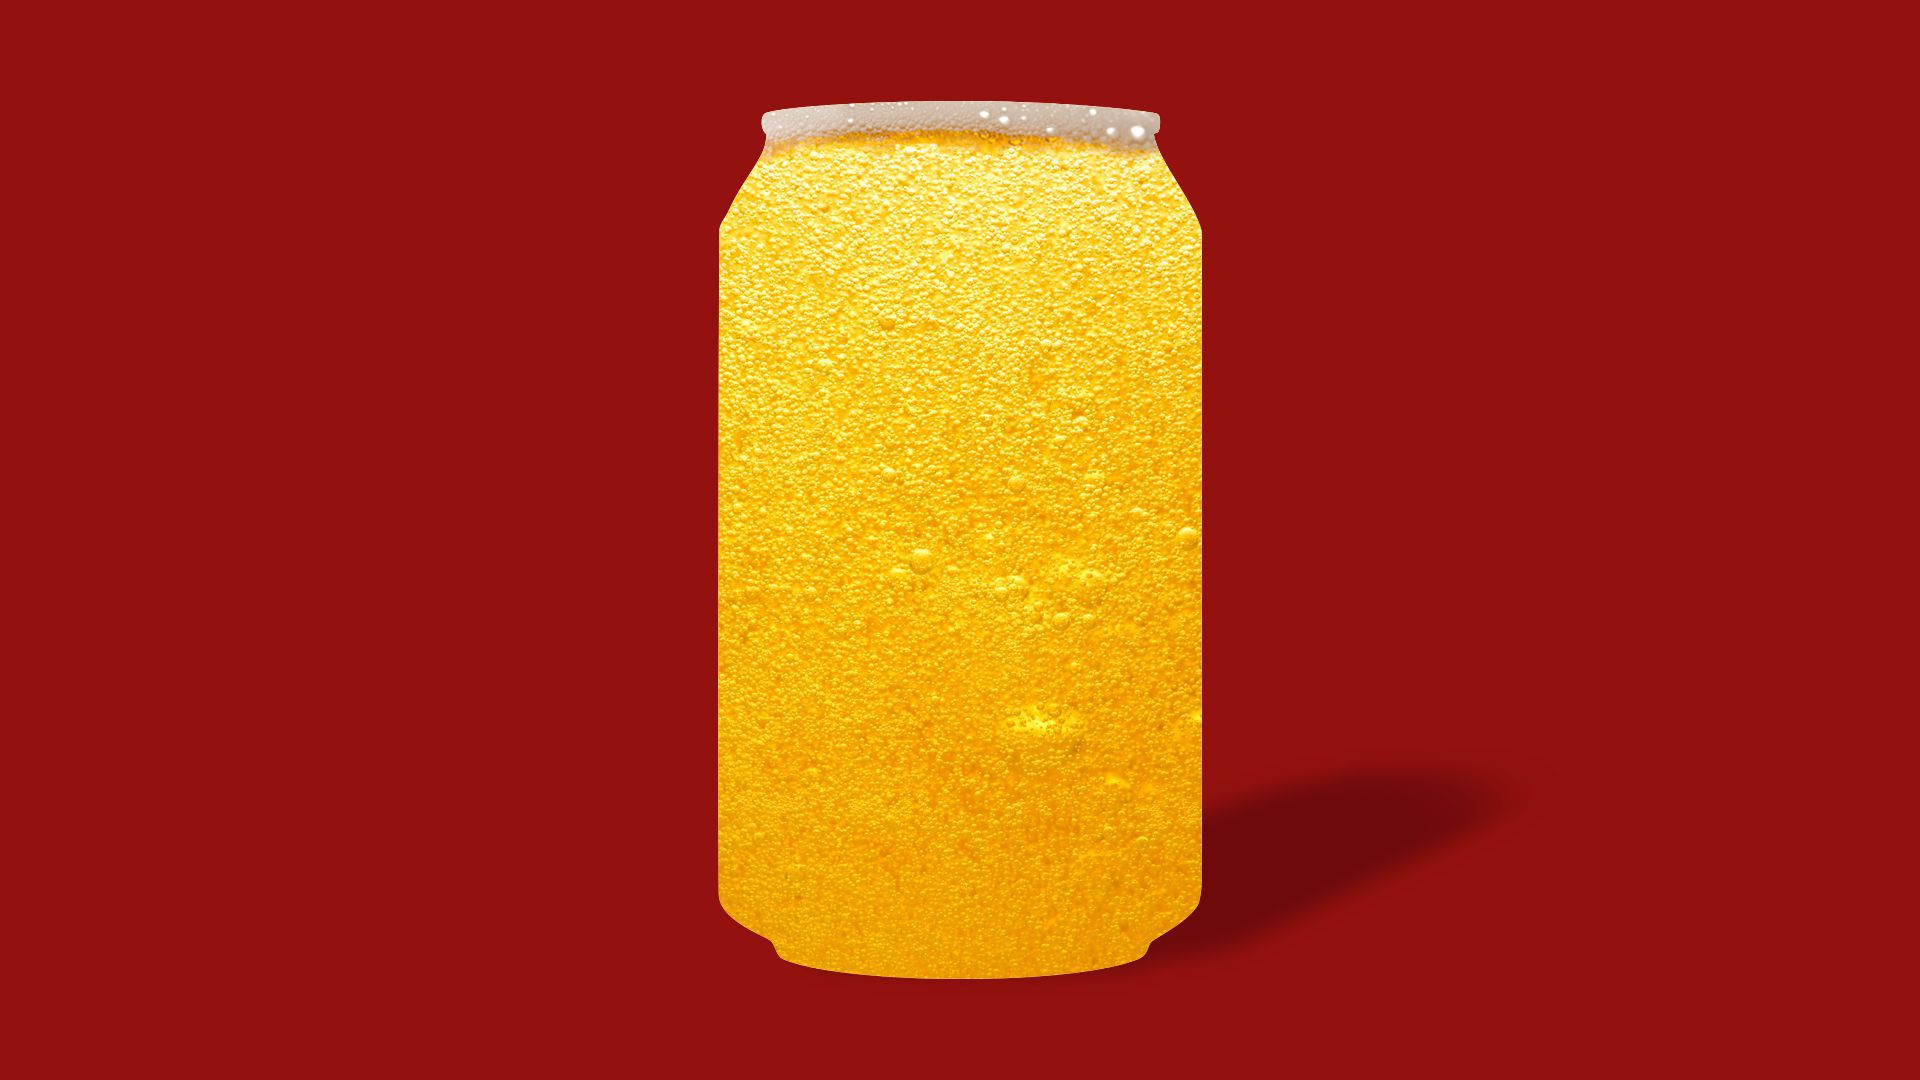 Illustration of beer in the shape of a beer can, but the aluminum can is missing.